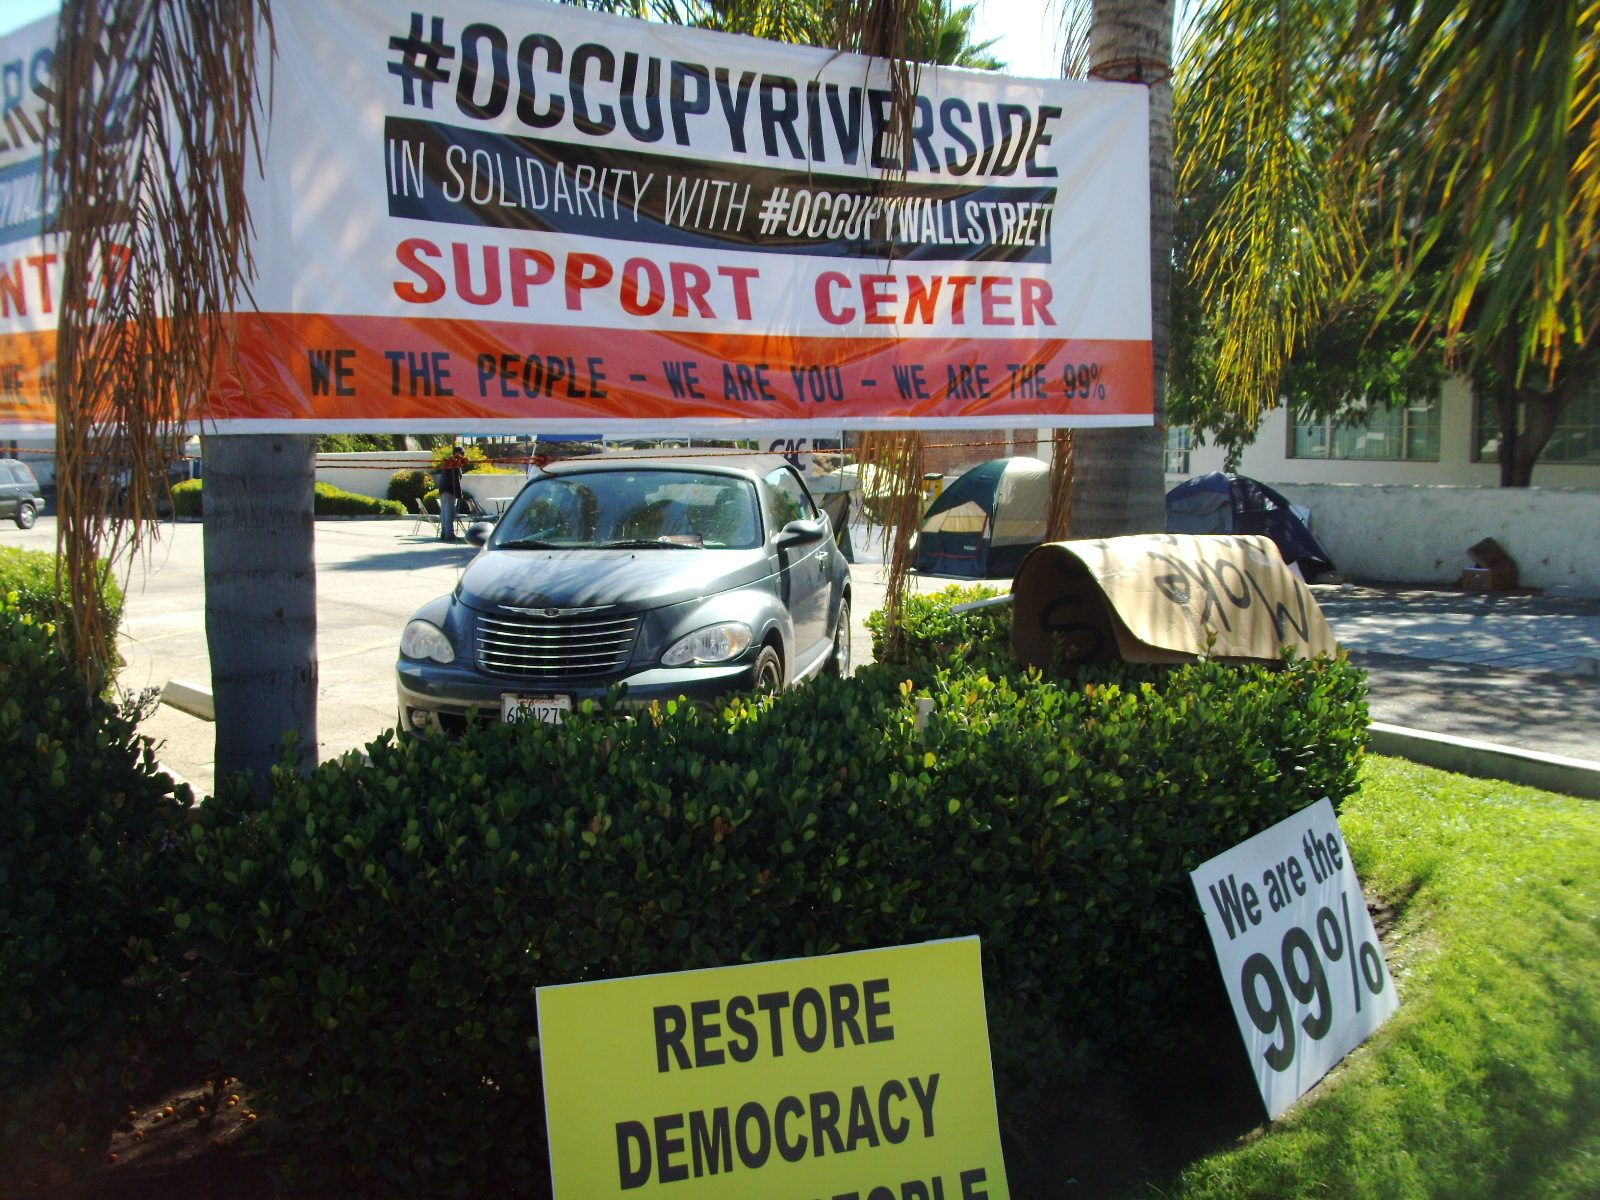 Occupy Riverside: the protest around the corner